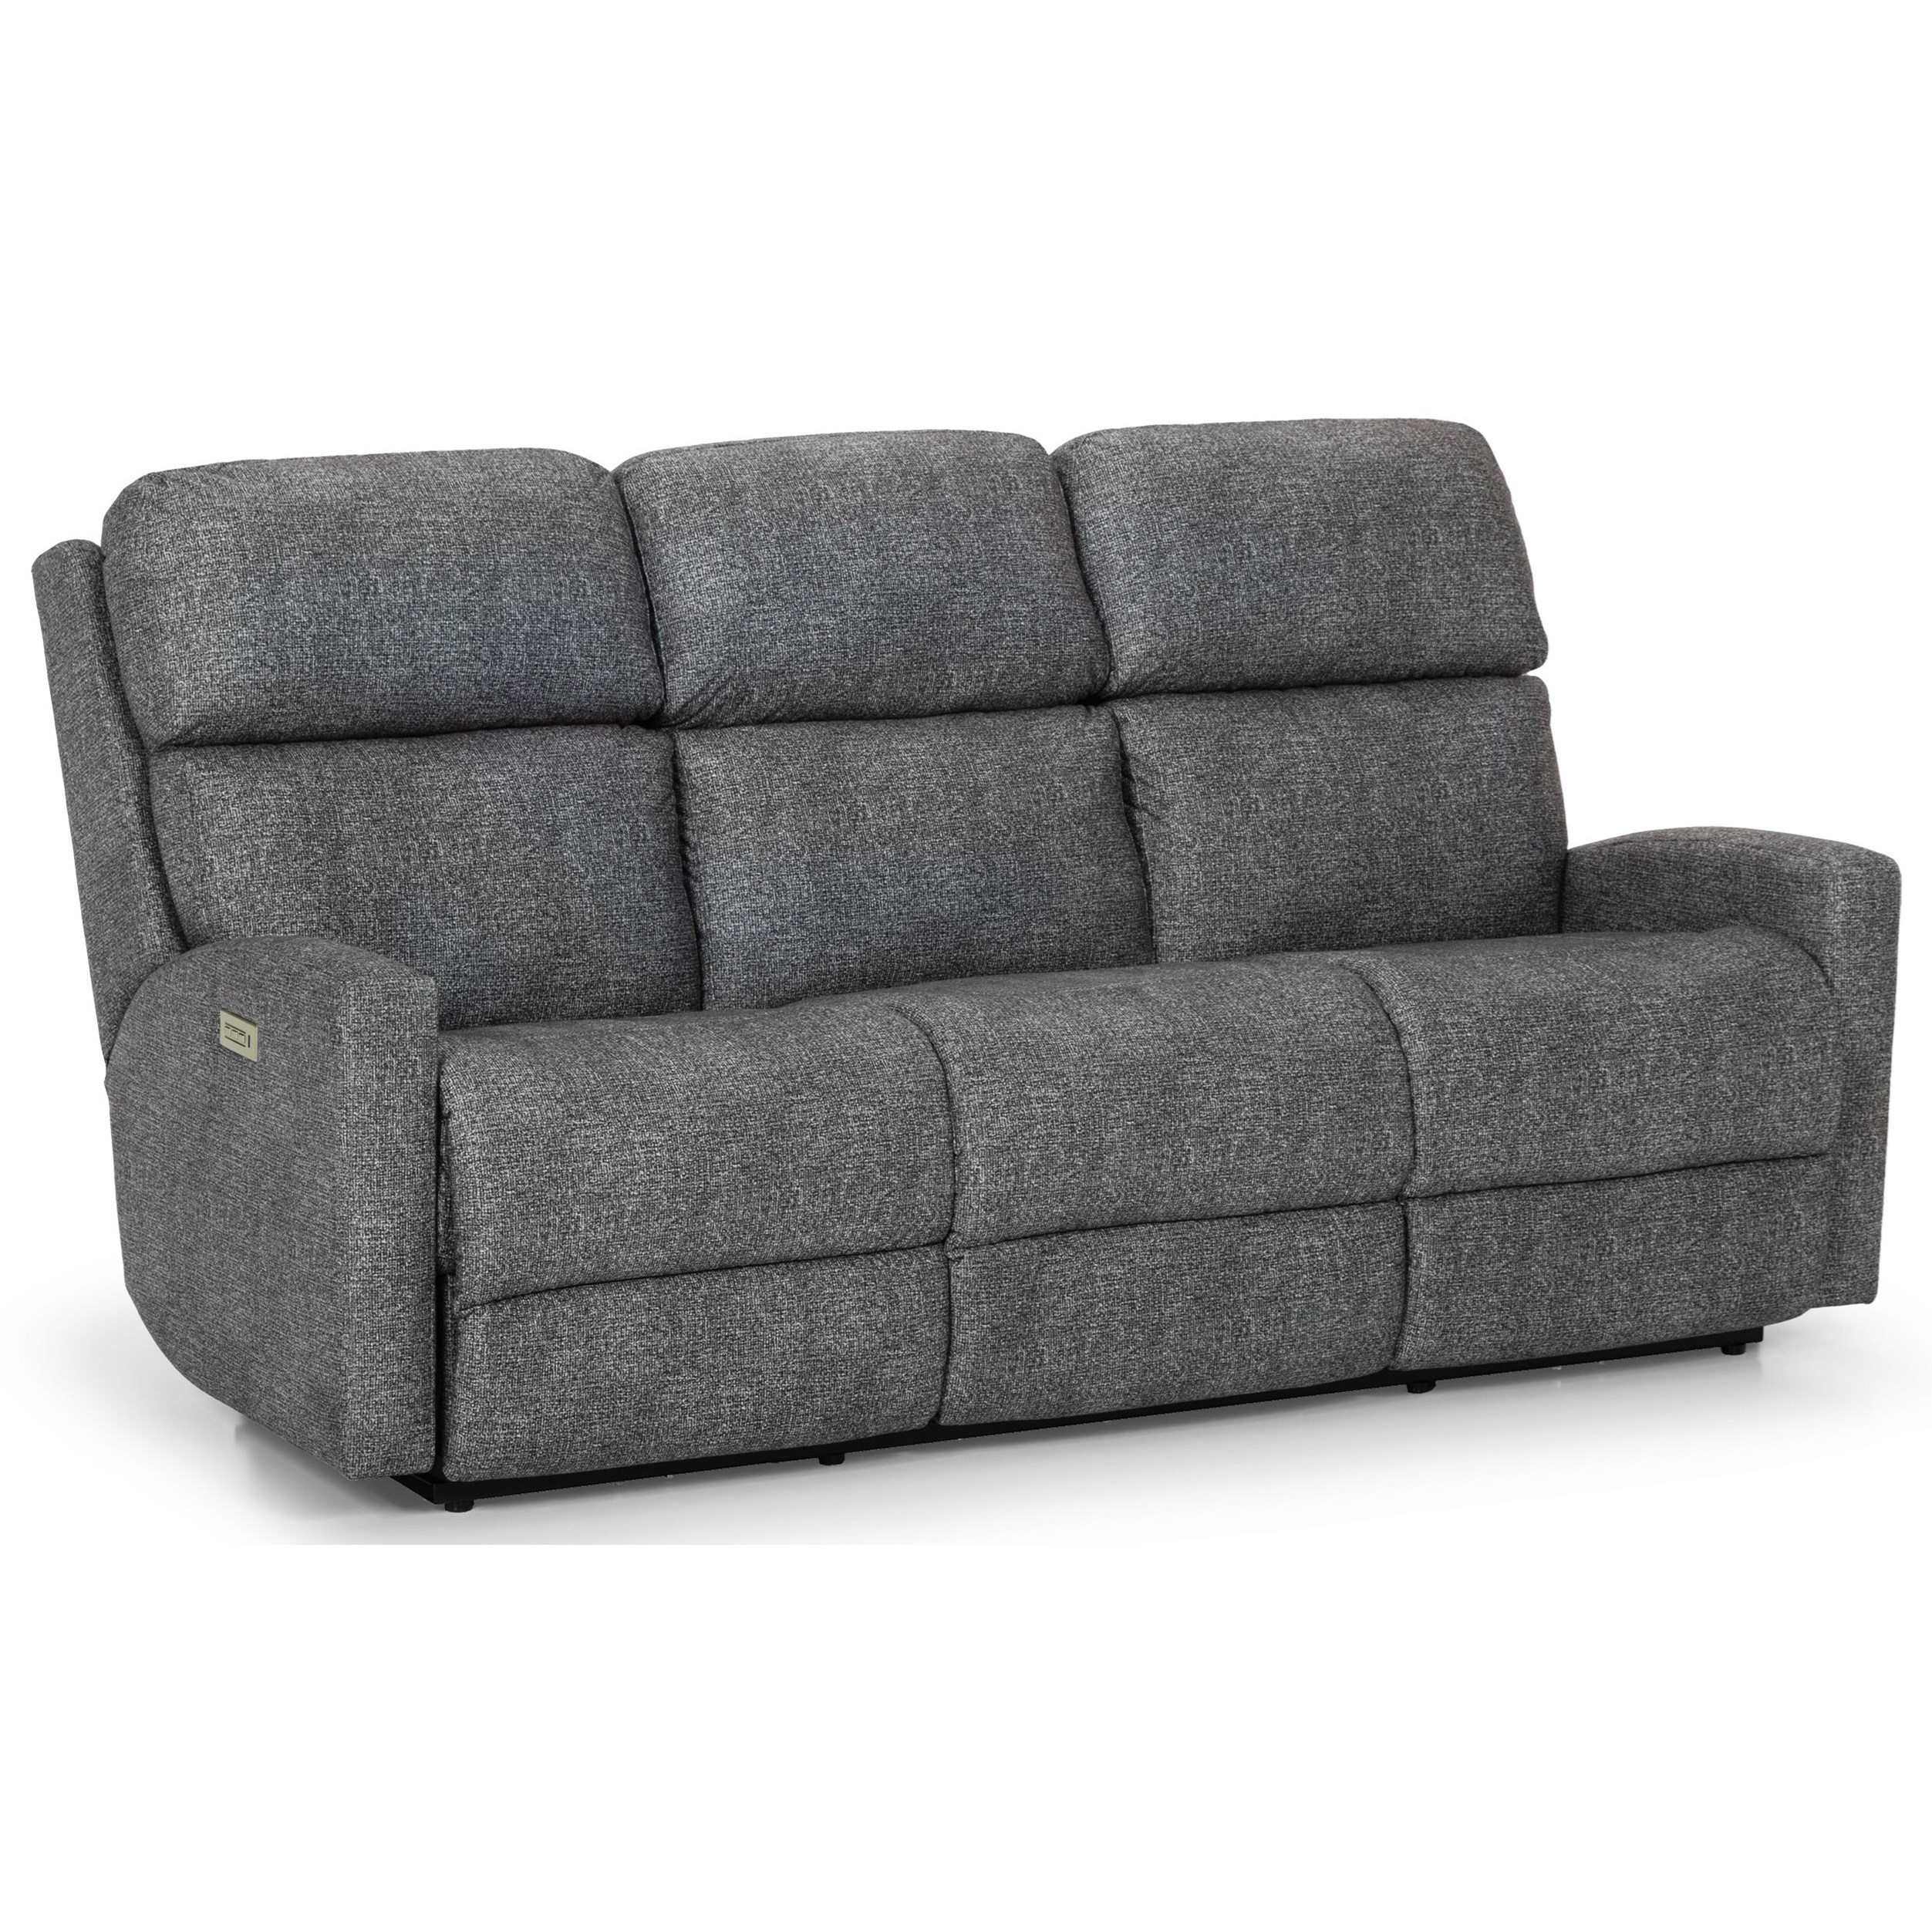 Superbe Stanton 857 Contemporary Power Reclining Sofa With Power Head/Lumbar And  USB Charging Ports